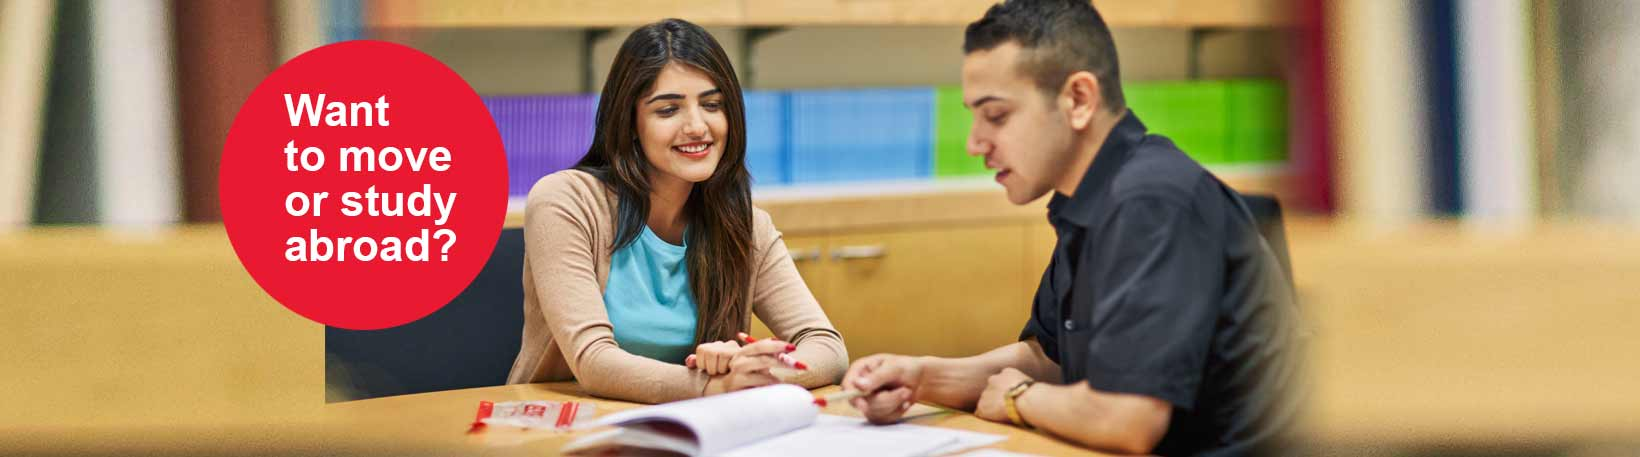 ielts test centres in punjab india Best ielts centre in punjab, india - elite school of english  you can give your test any of the centres in canada and can send your scores to your selected institutes.